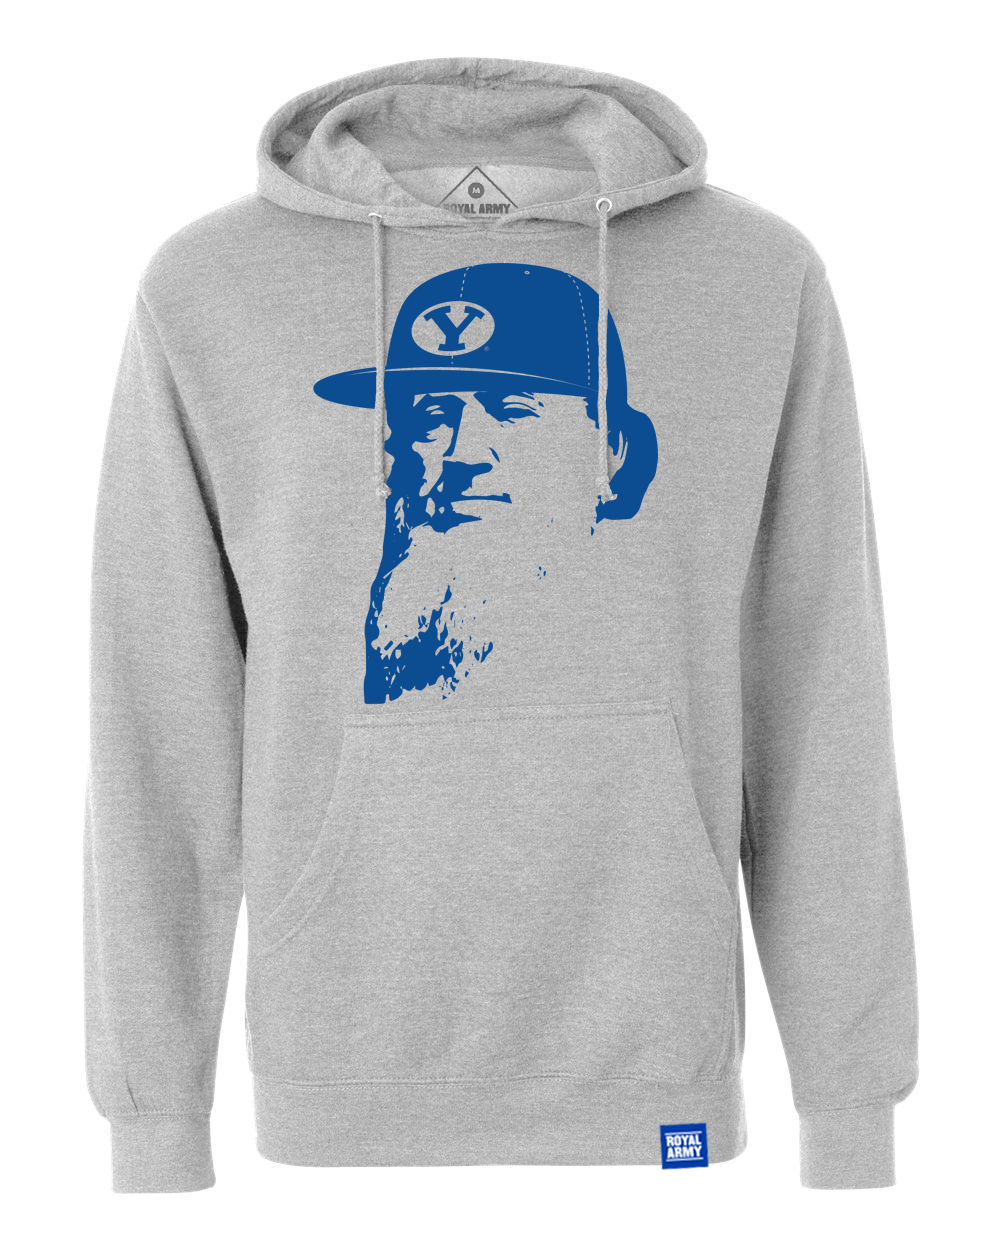 Flat Brim Brigham Gray with Royal Pullover Hoodie